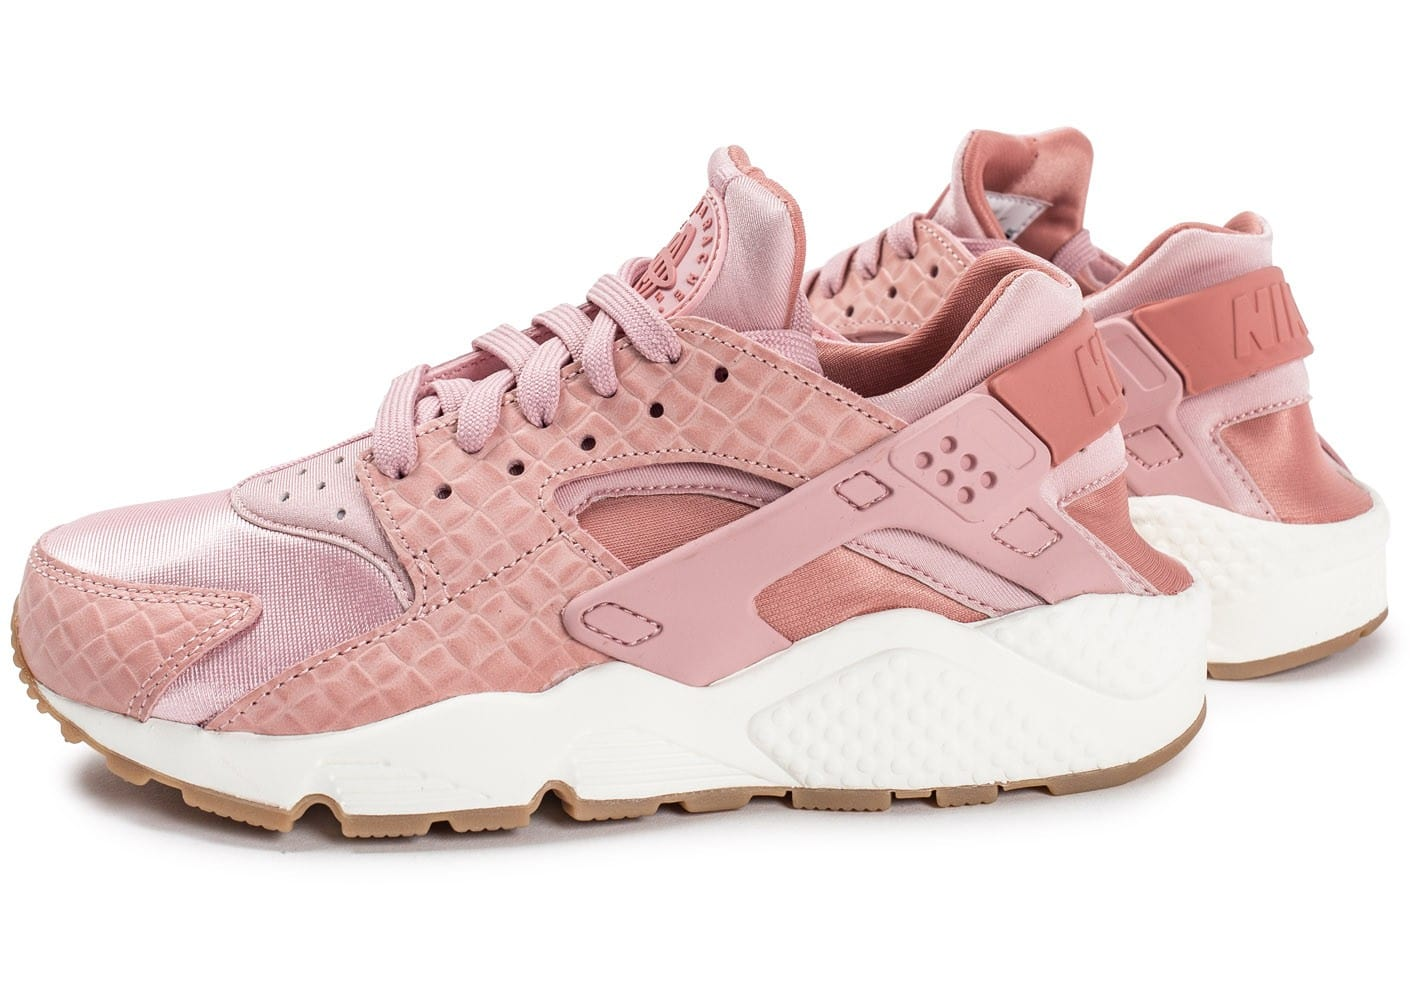 fashion styles great look another chance nike air huarache grise et rose